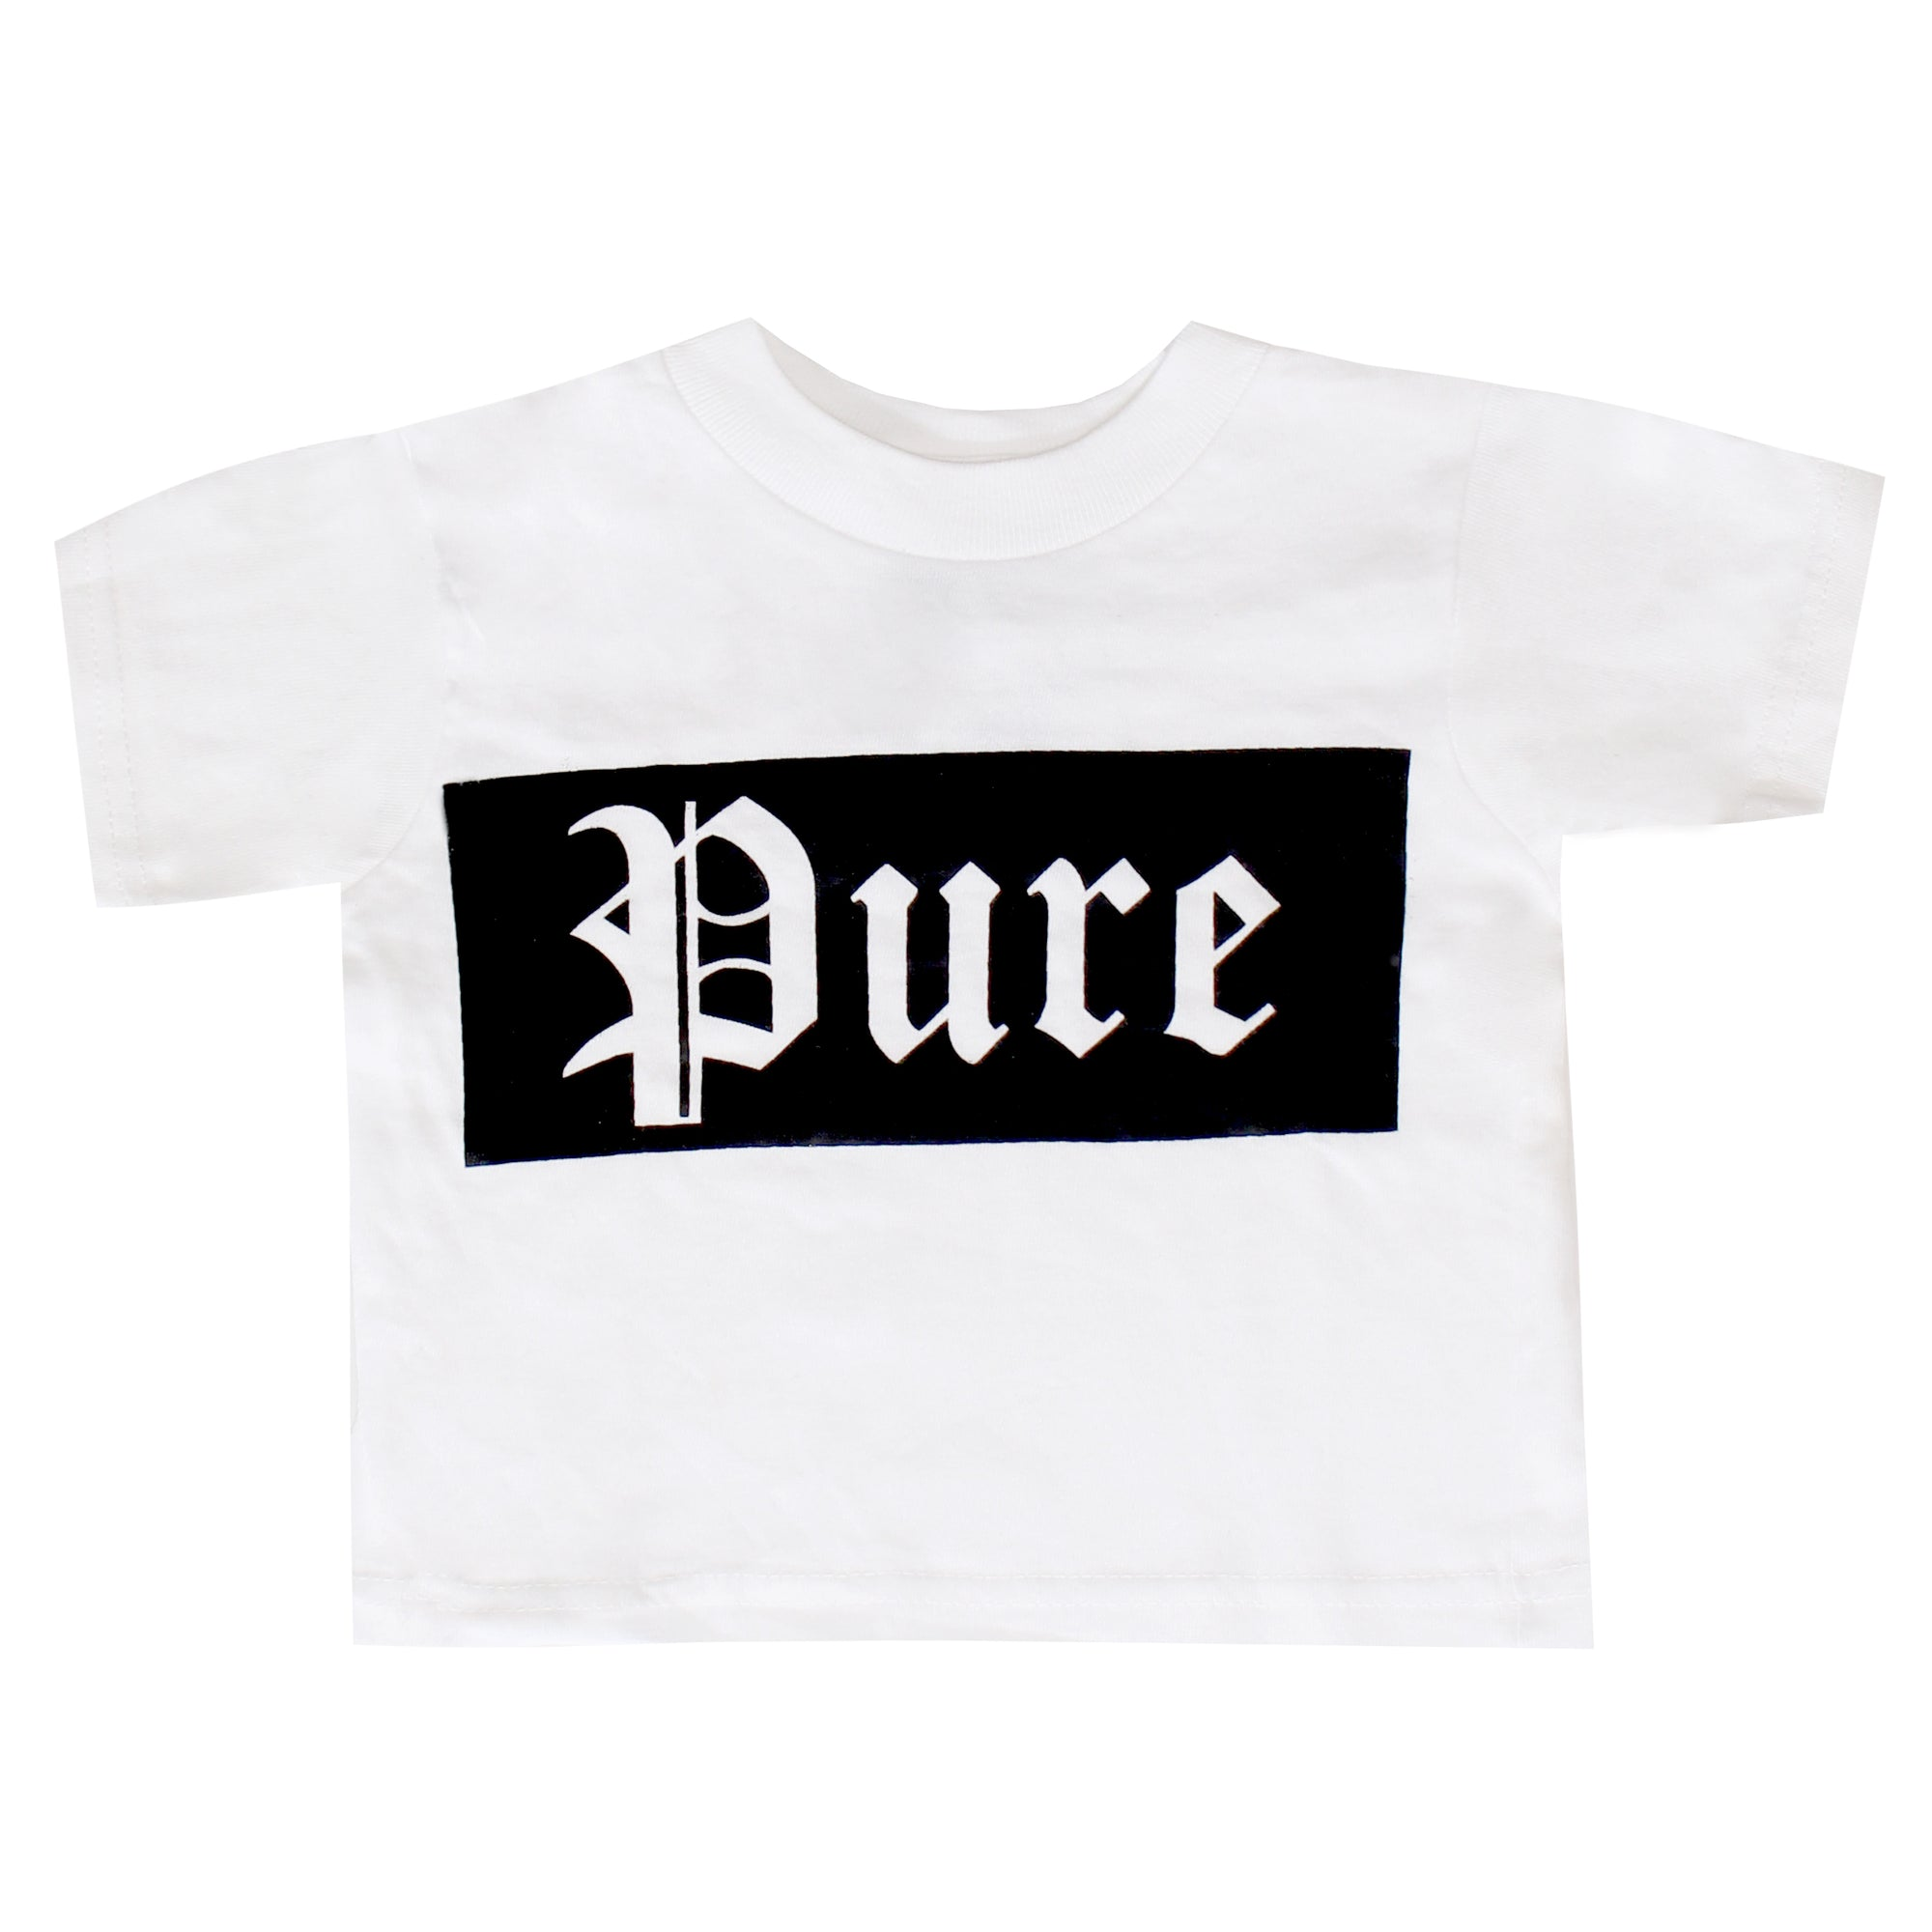 Kids Pure Block Logo Tee Shirt-White with Black Logo